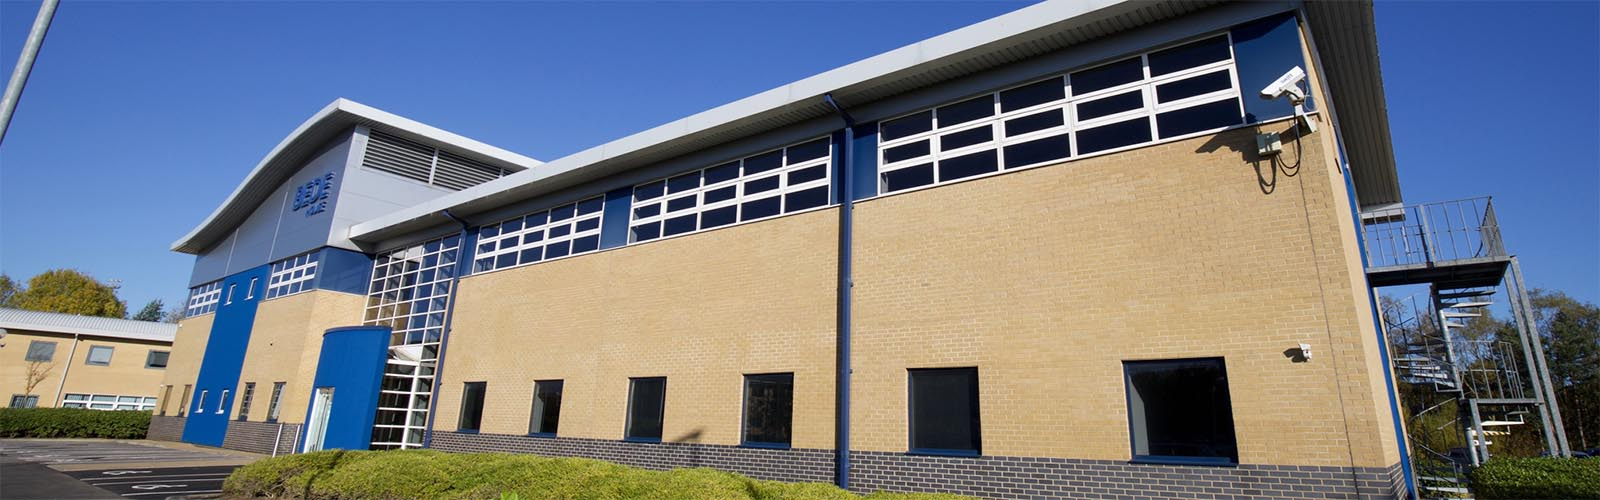 Durham Group Estates - commercial property in North East England and North Yorkshire